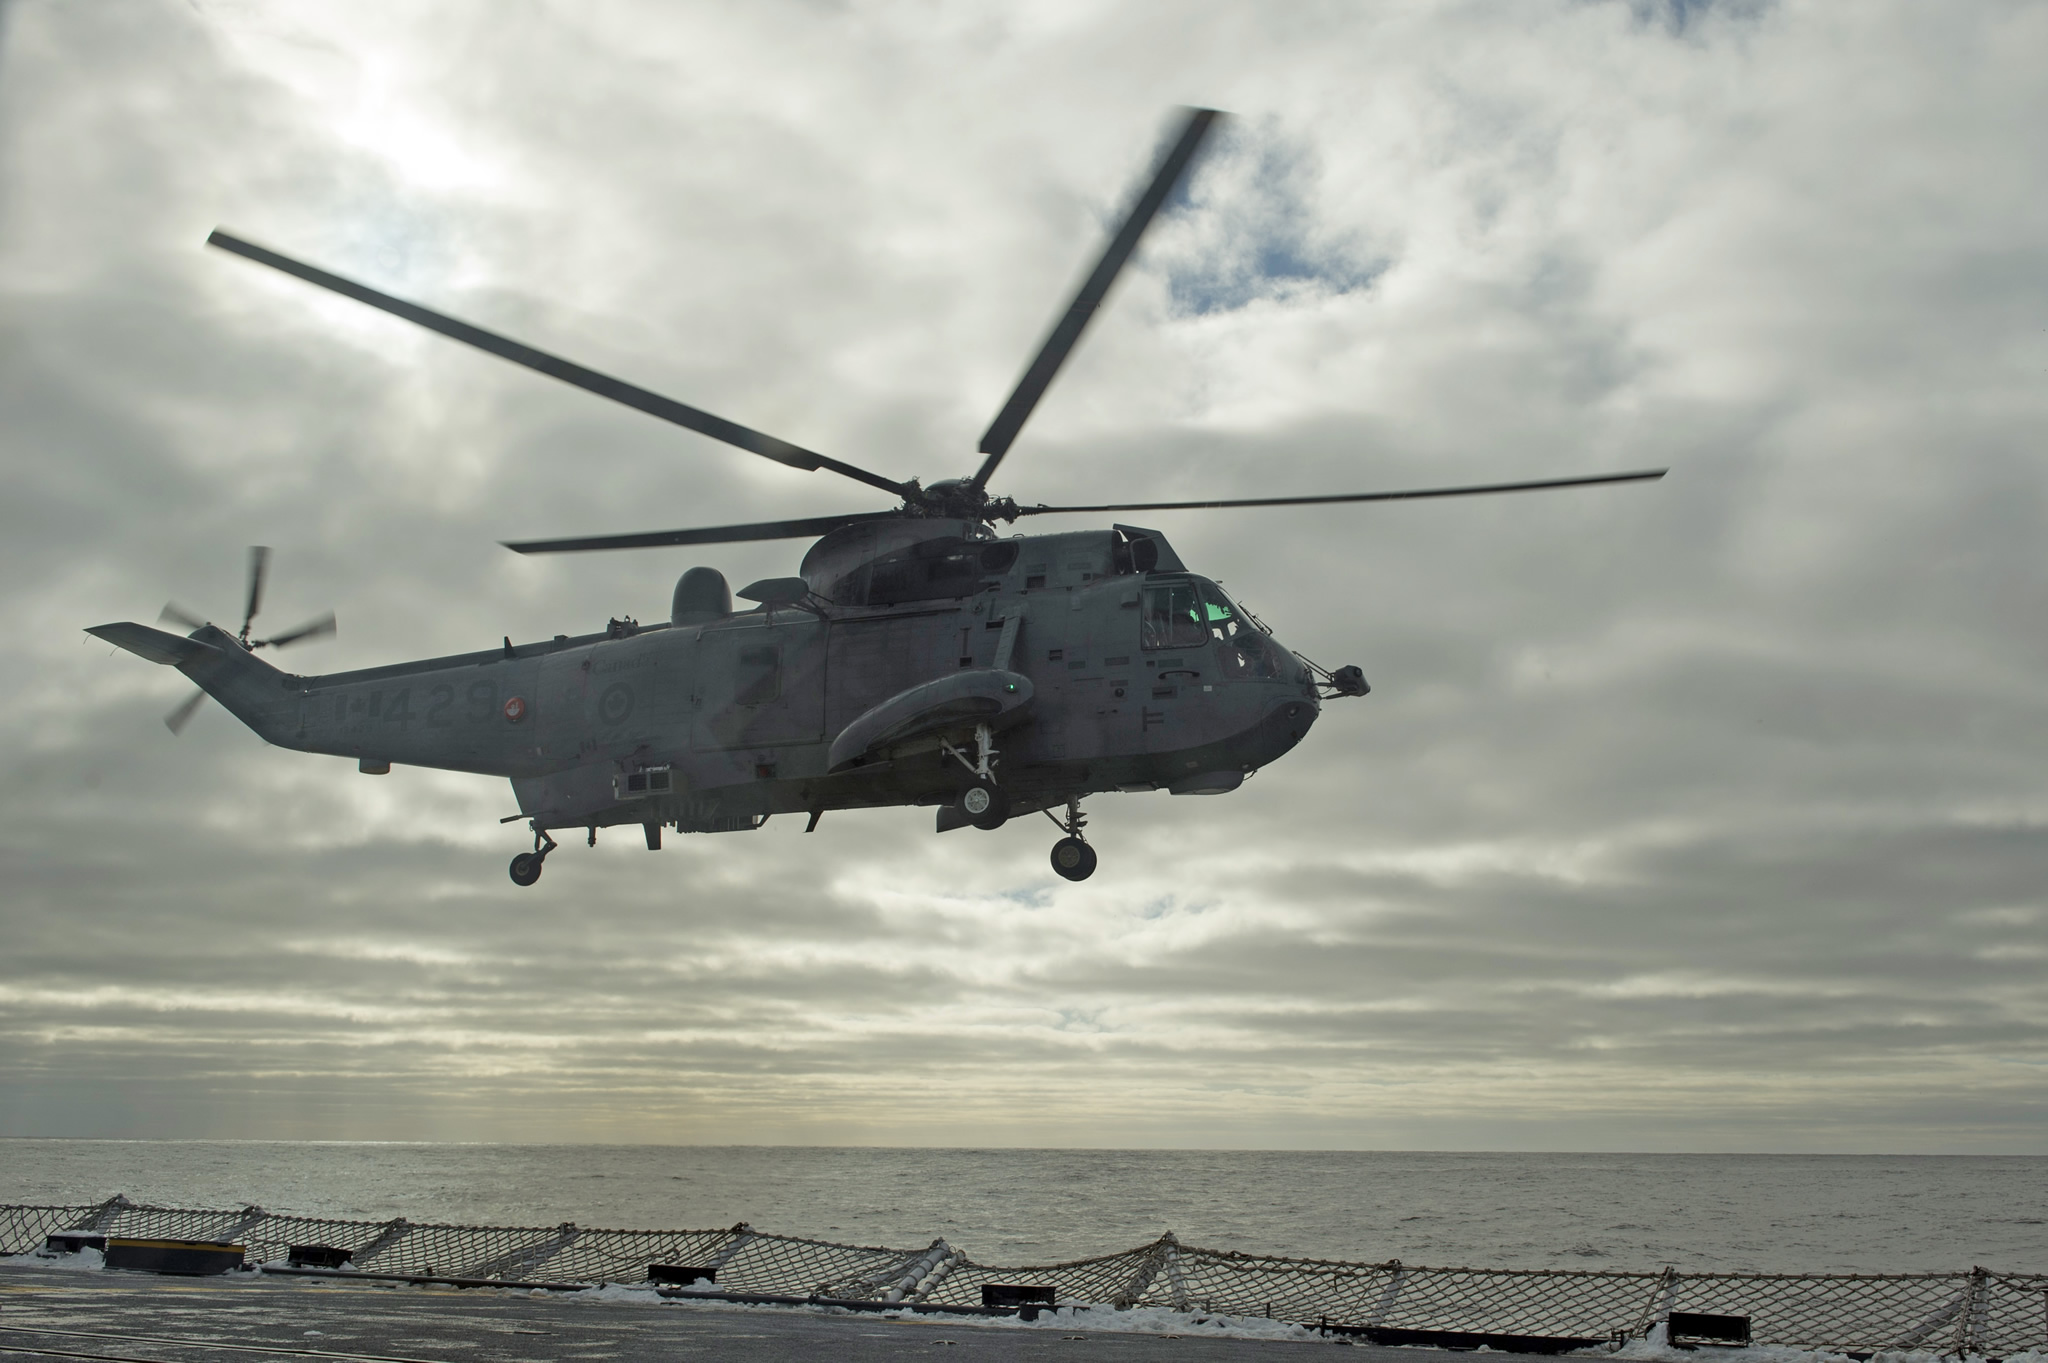 Atlantic Ocean. January 10, 2017 – A CH-124 Sea King helicopter departs off the flight deck of Her Majesty's Canadian Ship St. John's during a training exercise as the ship transits the Atlantic Ocean to participate in Operation REASSURANCE. (Photo: Leading Seaman Ogle Henry, Formation Imaging Services)